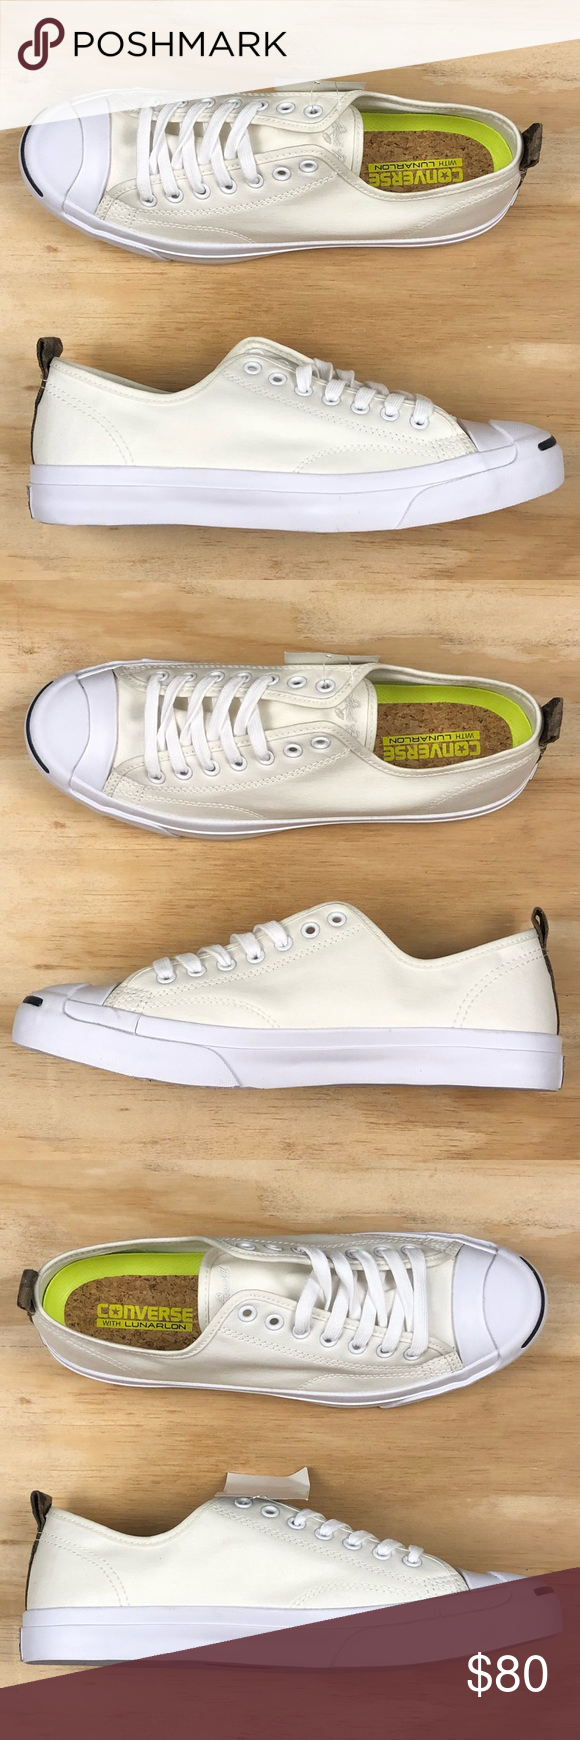 c156ec2a174cd4 Converse Jack Purcell Pro Ox White Camo Low Top 😁Brand New - Never Worn -  No Box - No Rips Or Tears - No Stains - Smoke Free - 100% Authentic ...